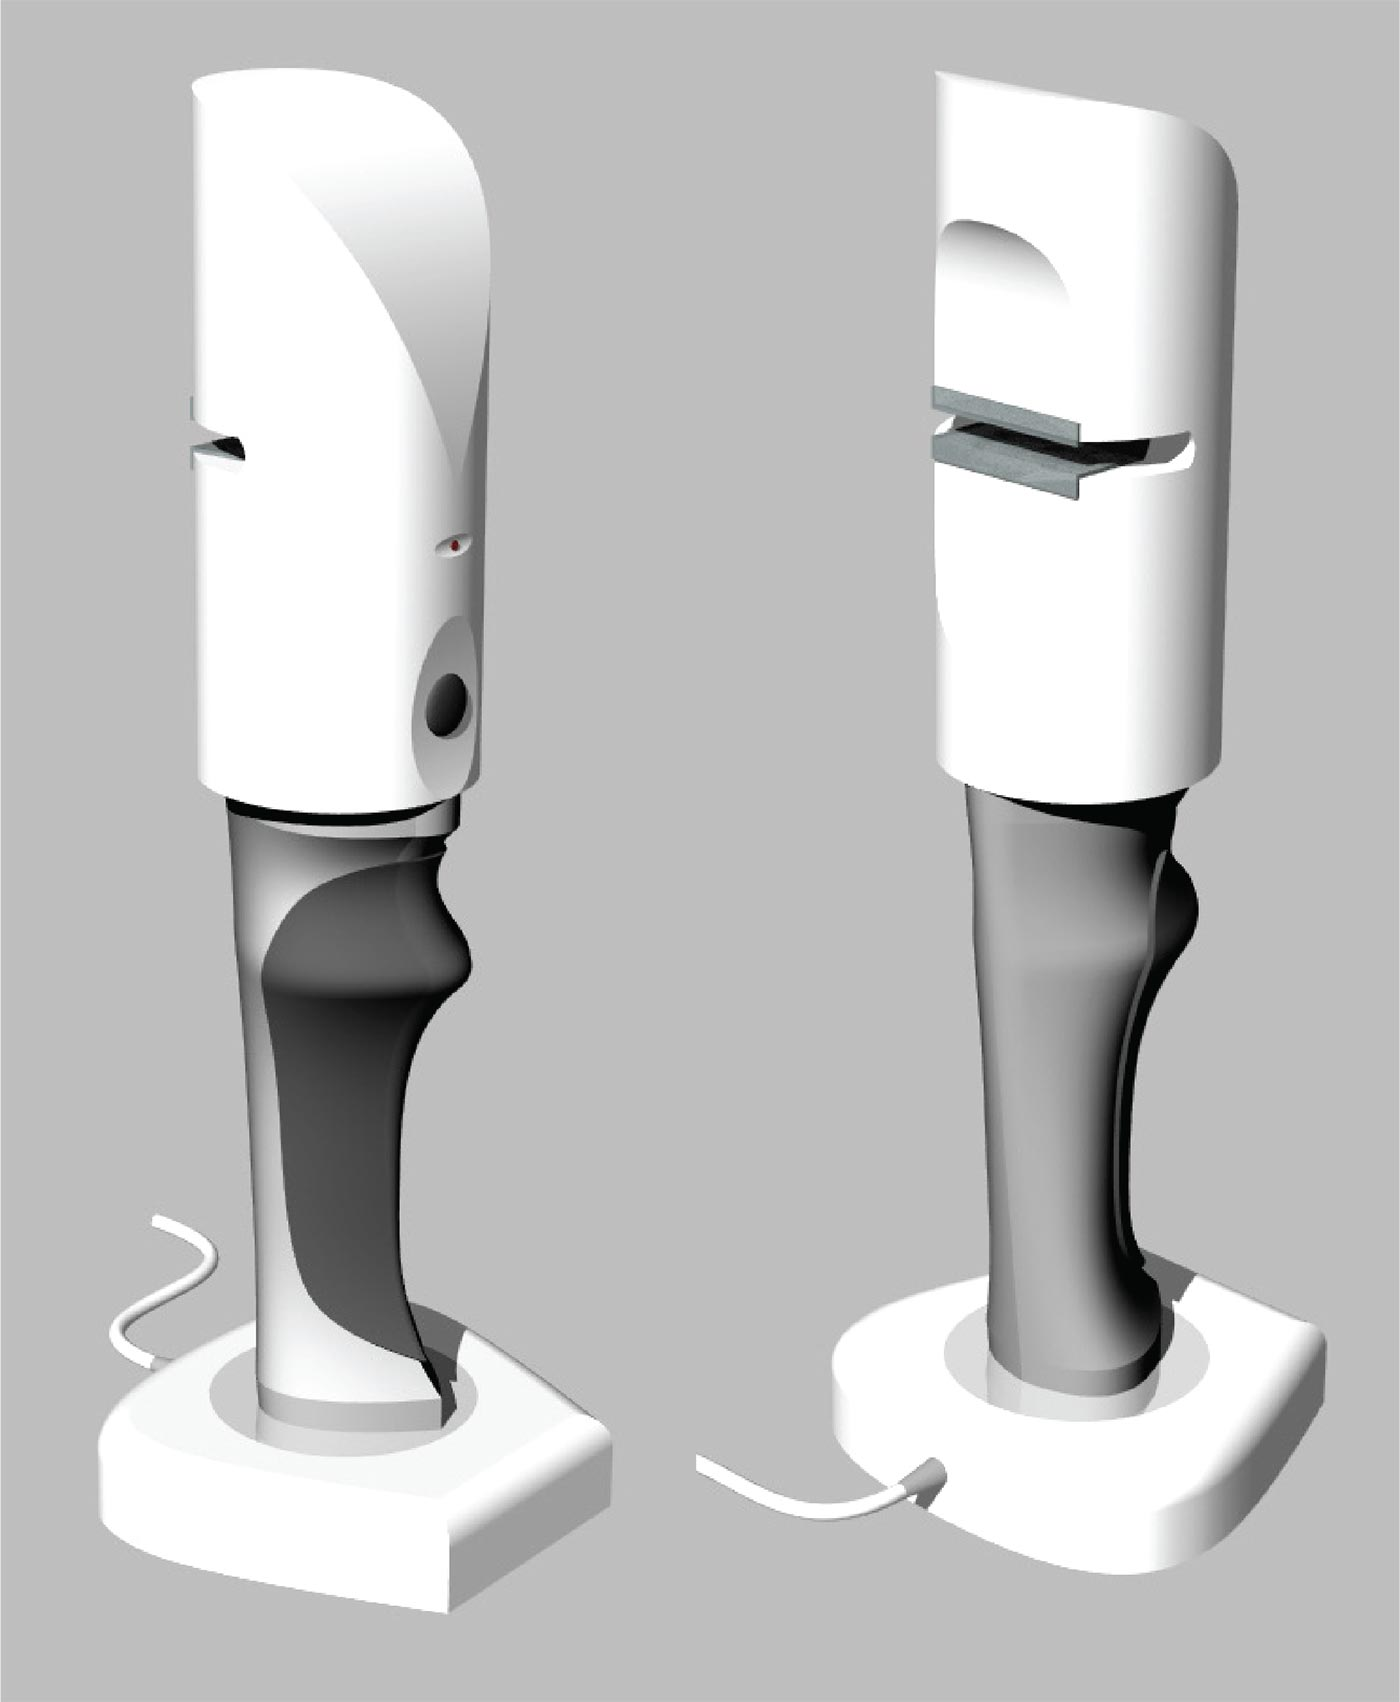 SonoSolve catheter clearing device product concept final 3D rendering made at NextFab makerspace